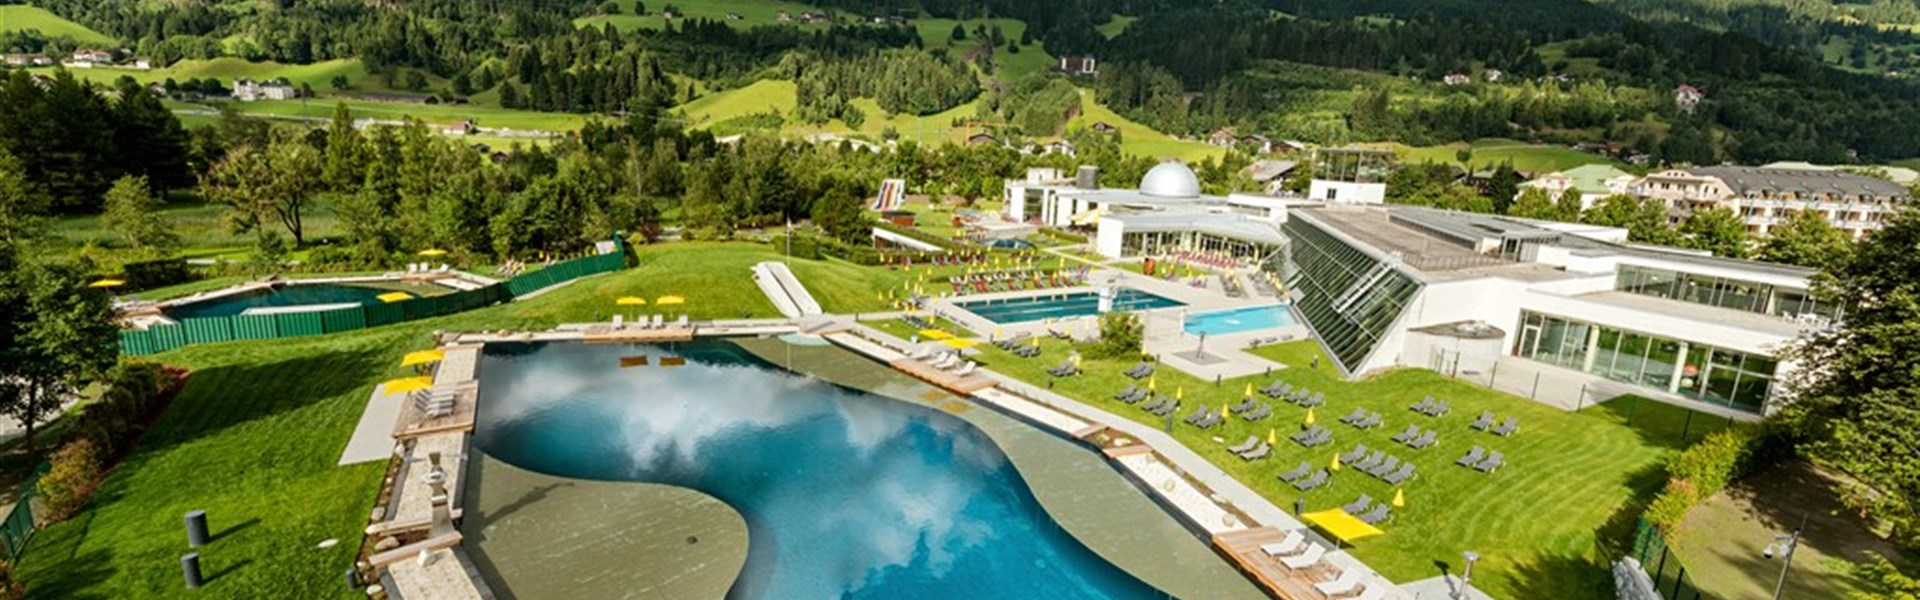 Hotel Norica Therme -